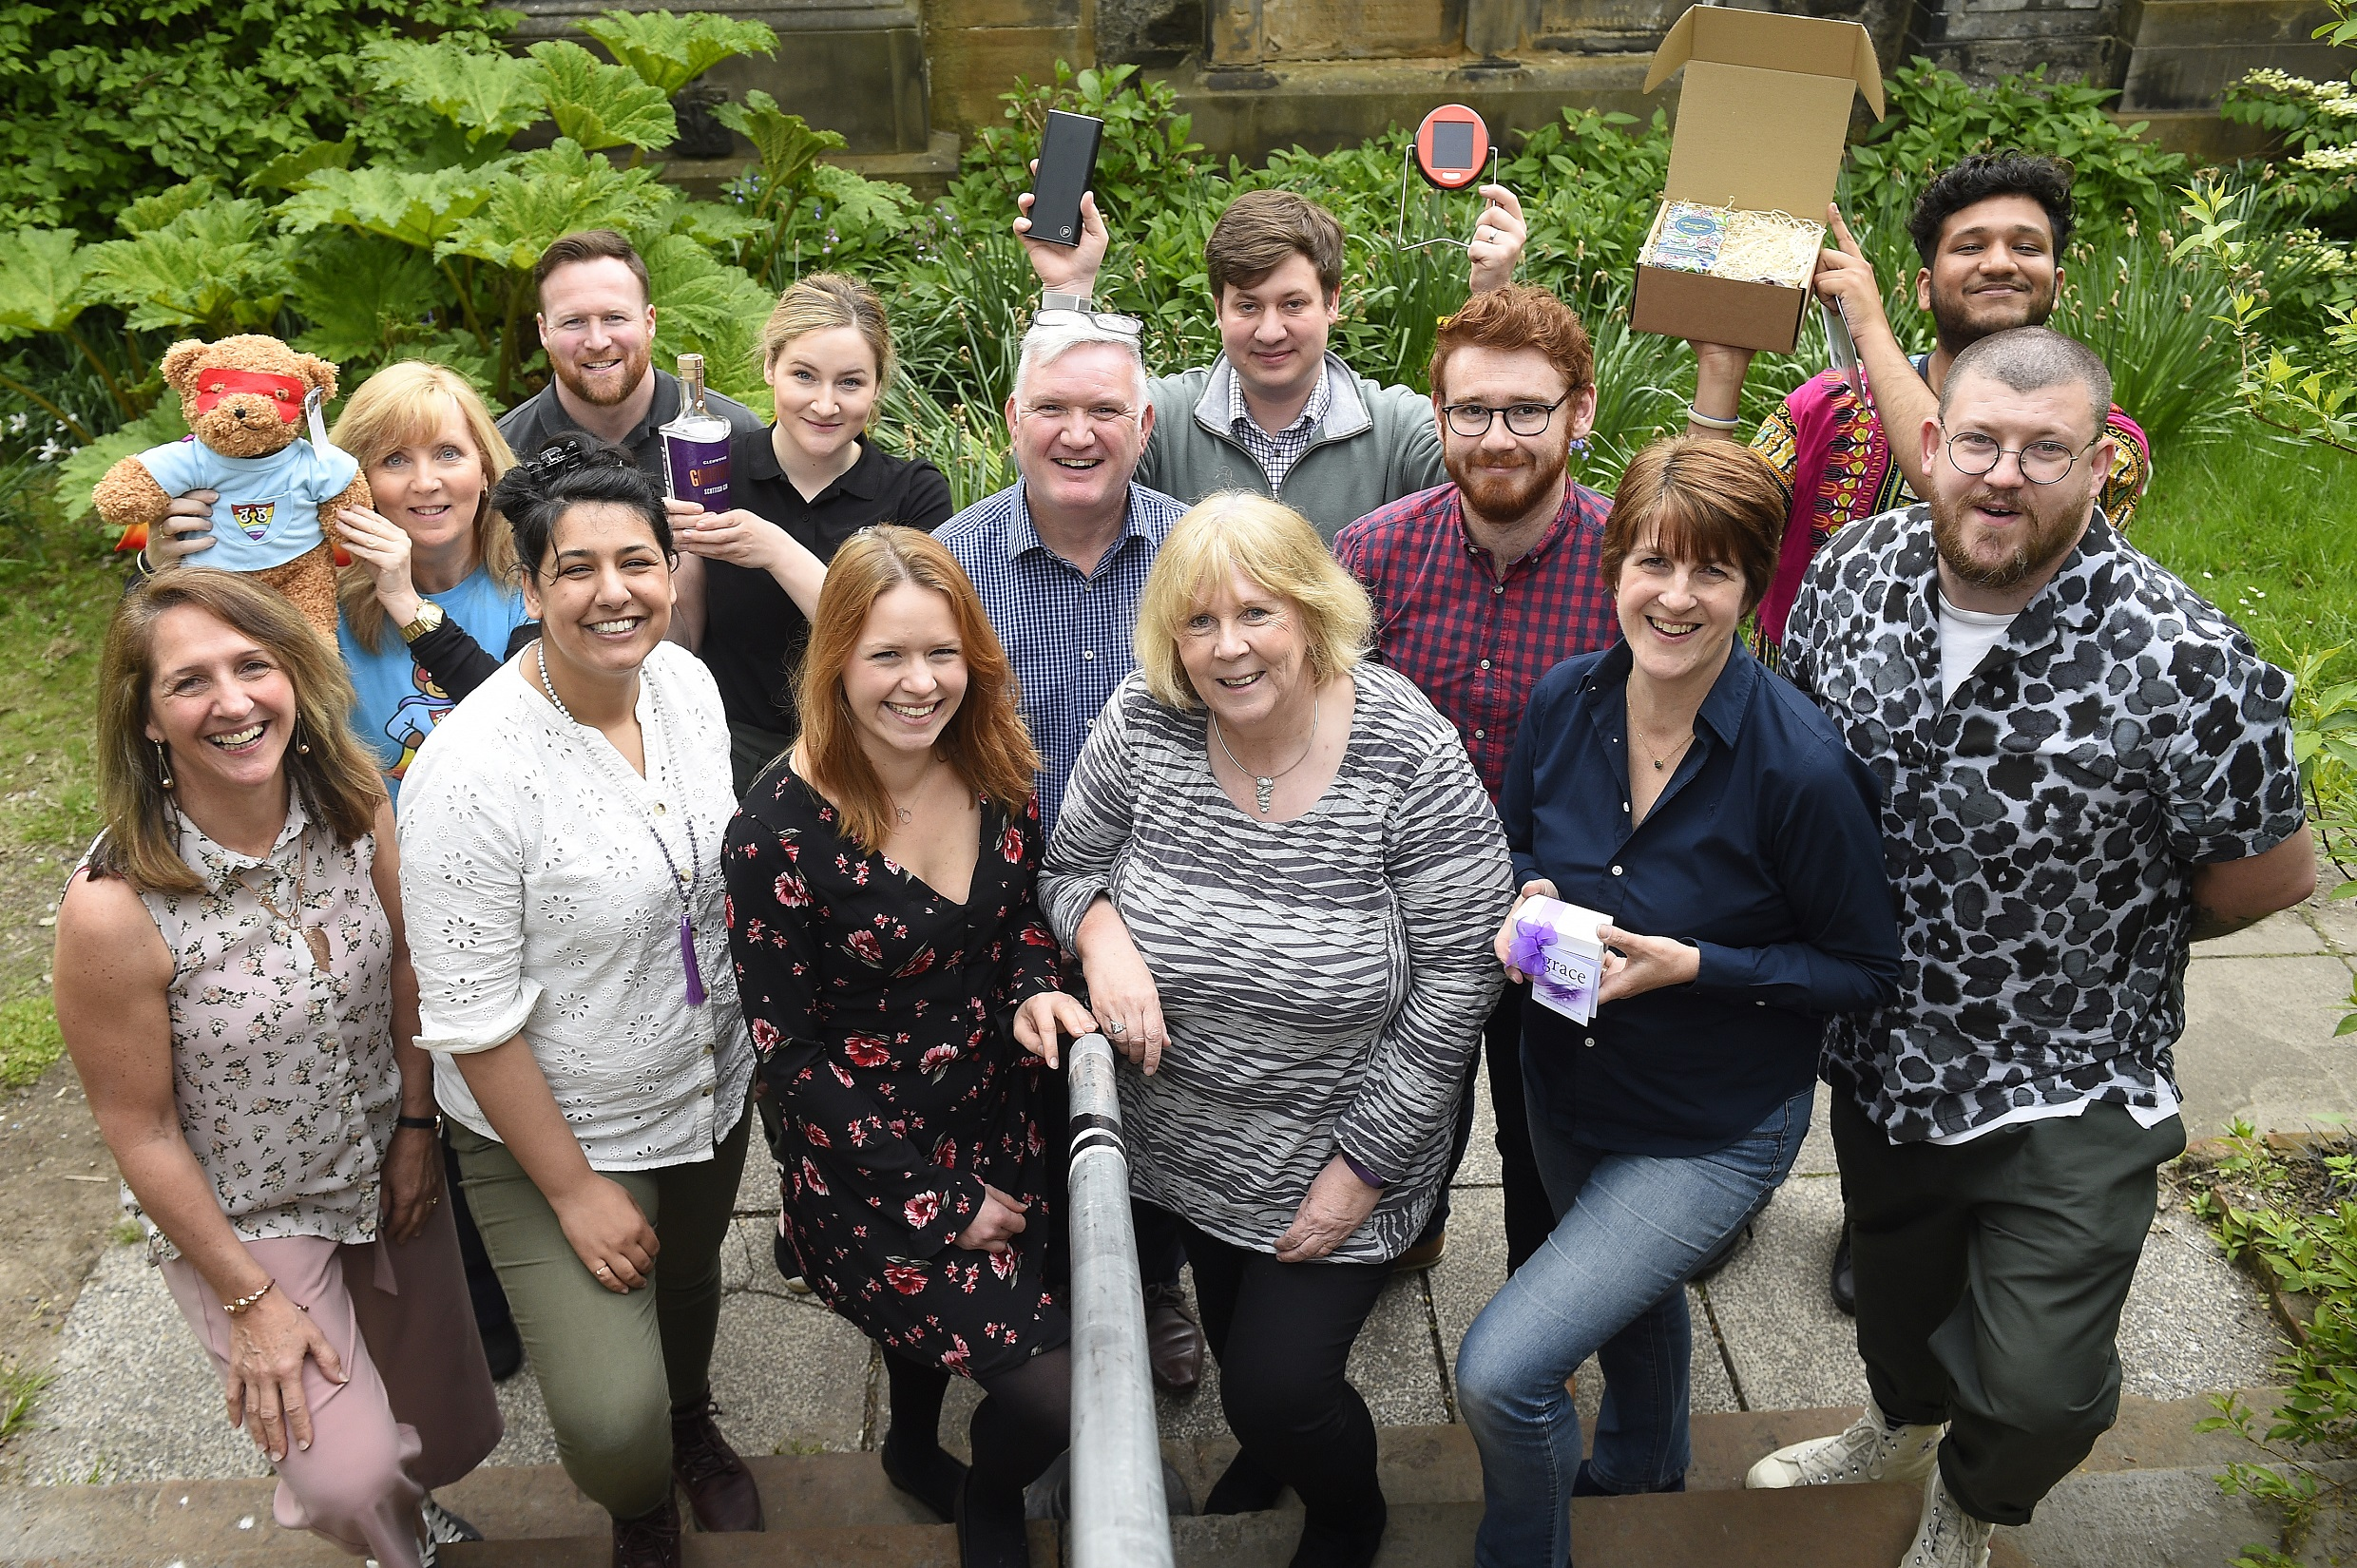 Attendees at the 2019 SIS Retail Academy gather for a photo, some are holding their retail products in the air such as a teddy bear and a bottle of alcohol